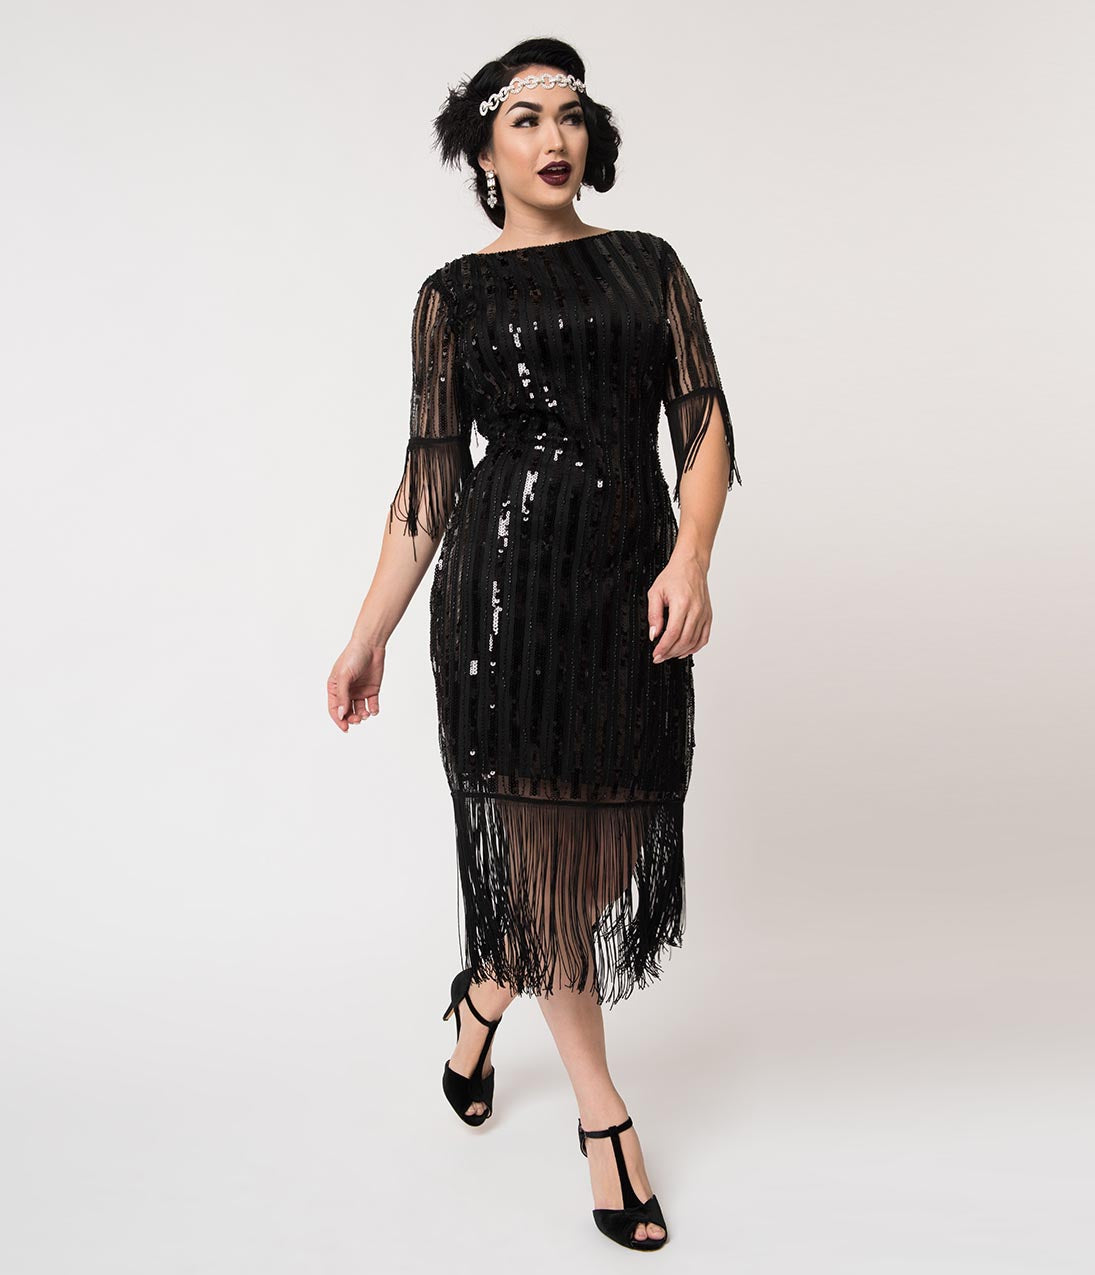 1920s Evening Dresses & Formal Gowns Unique Vintage Black Sequin Fringe Sleeve Marcy Flapper Dress $98.00 AT vintagedancer.com